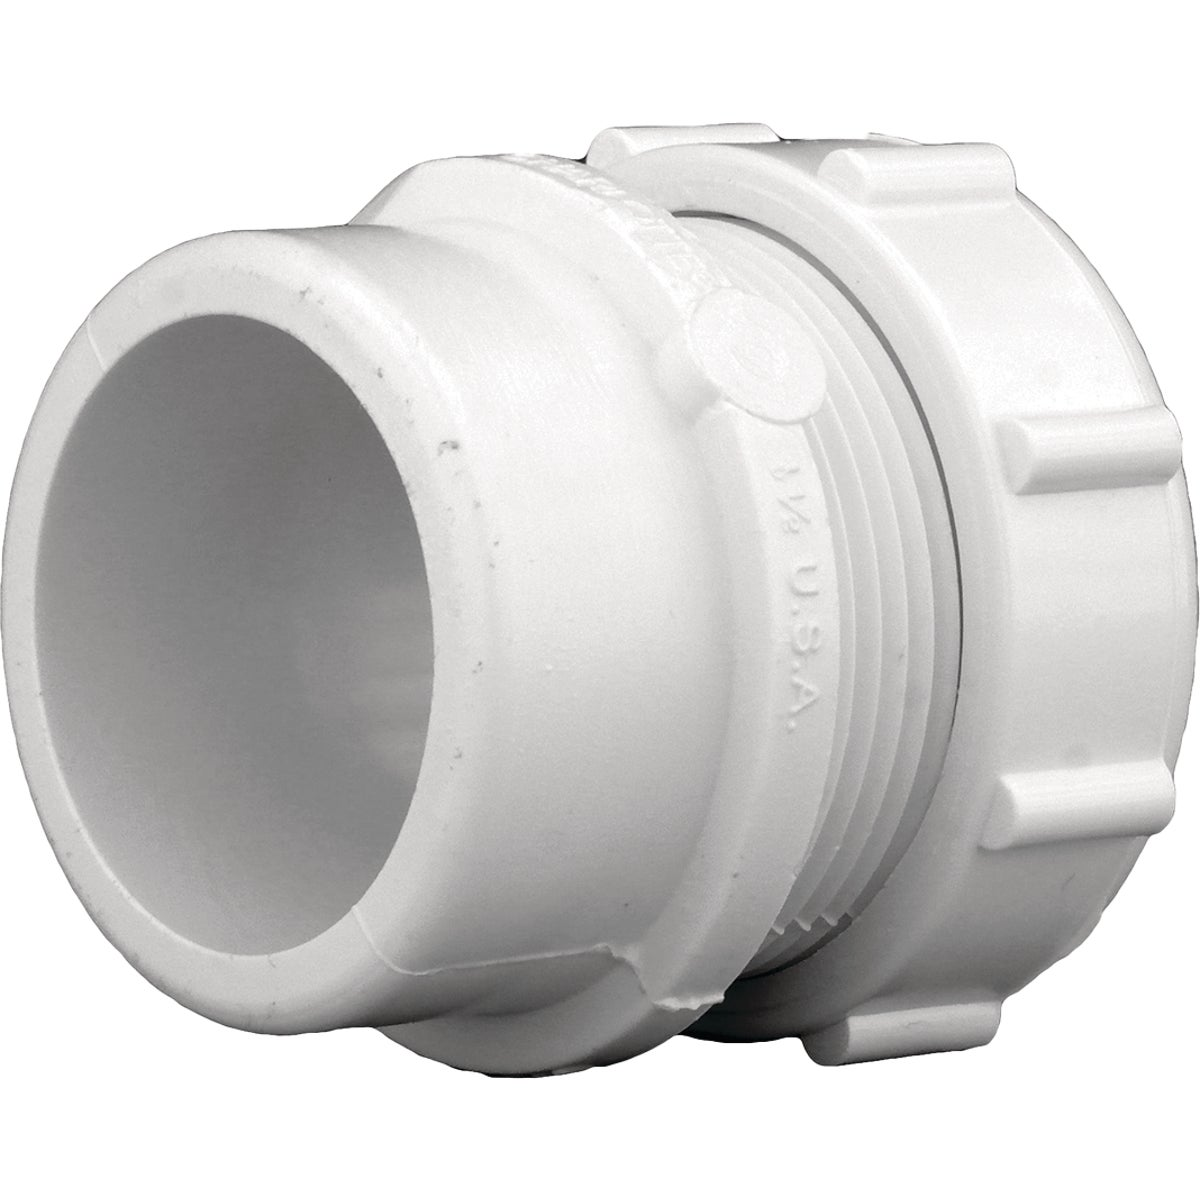 "1-1/2""X1-1/4"" M ADAPTER - 72311 by Genova Inc  Pvc Dwv"